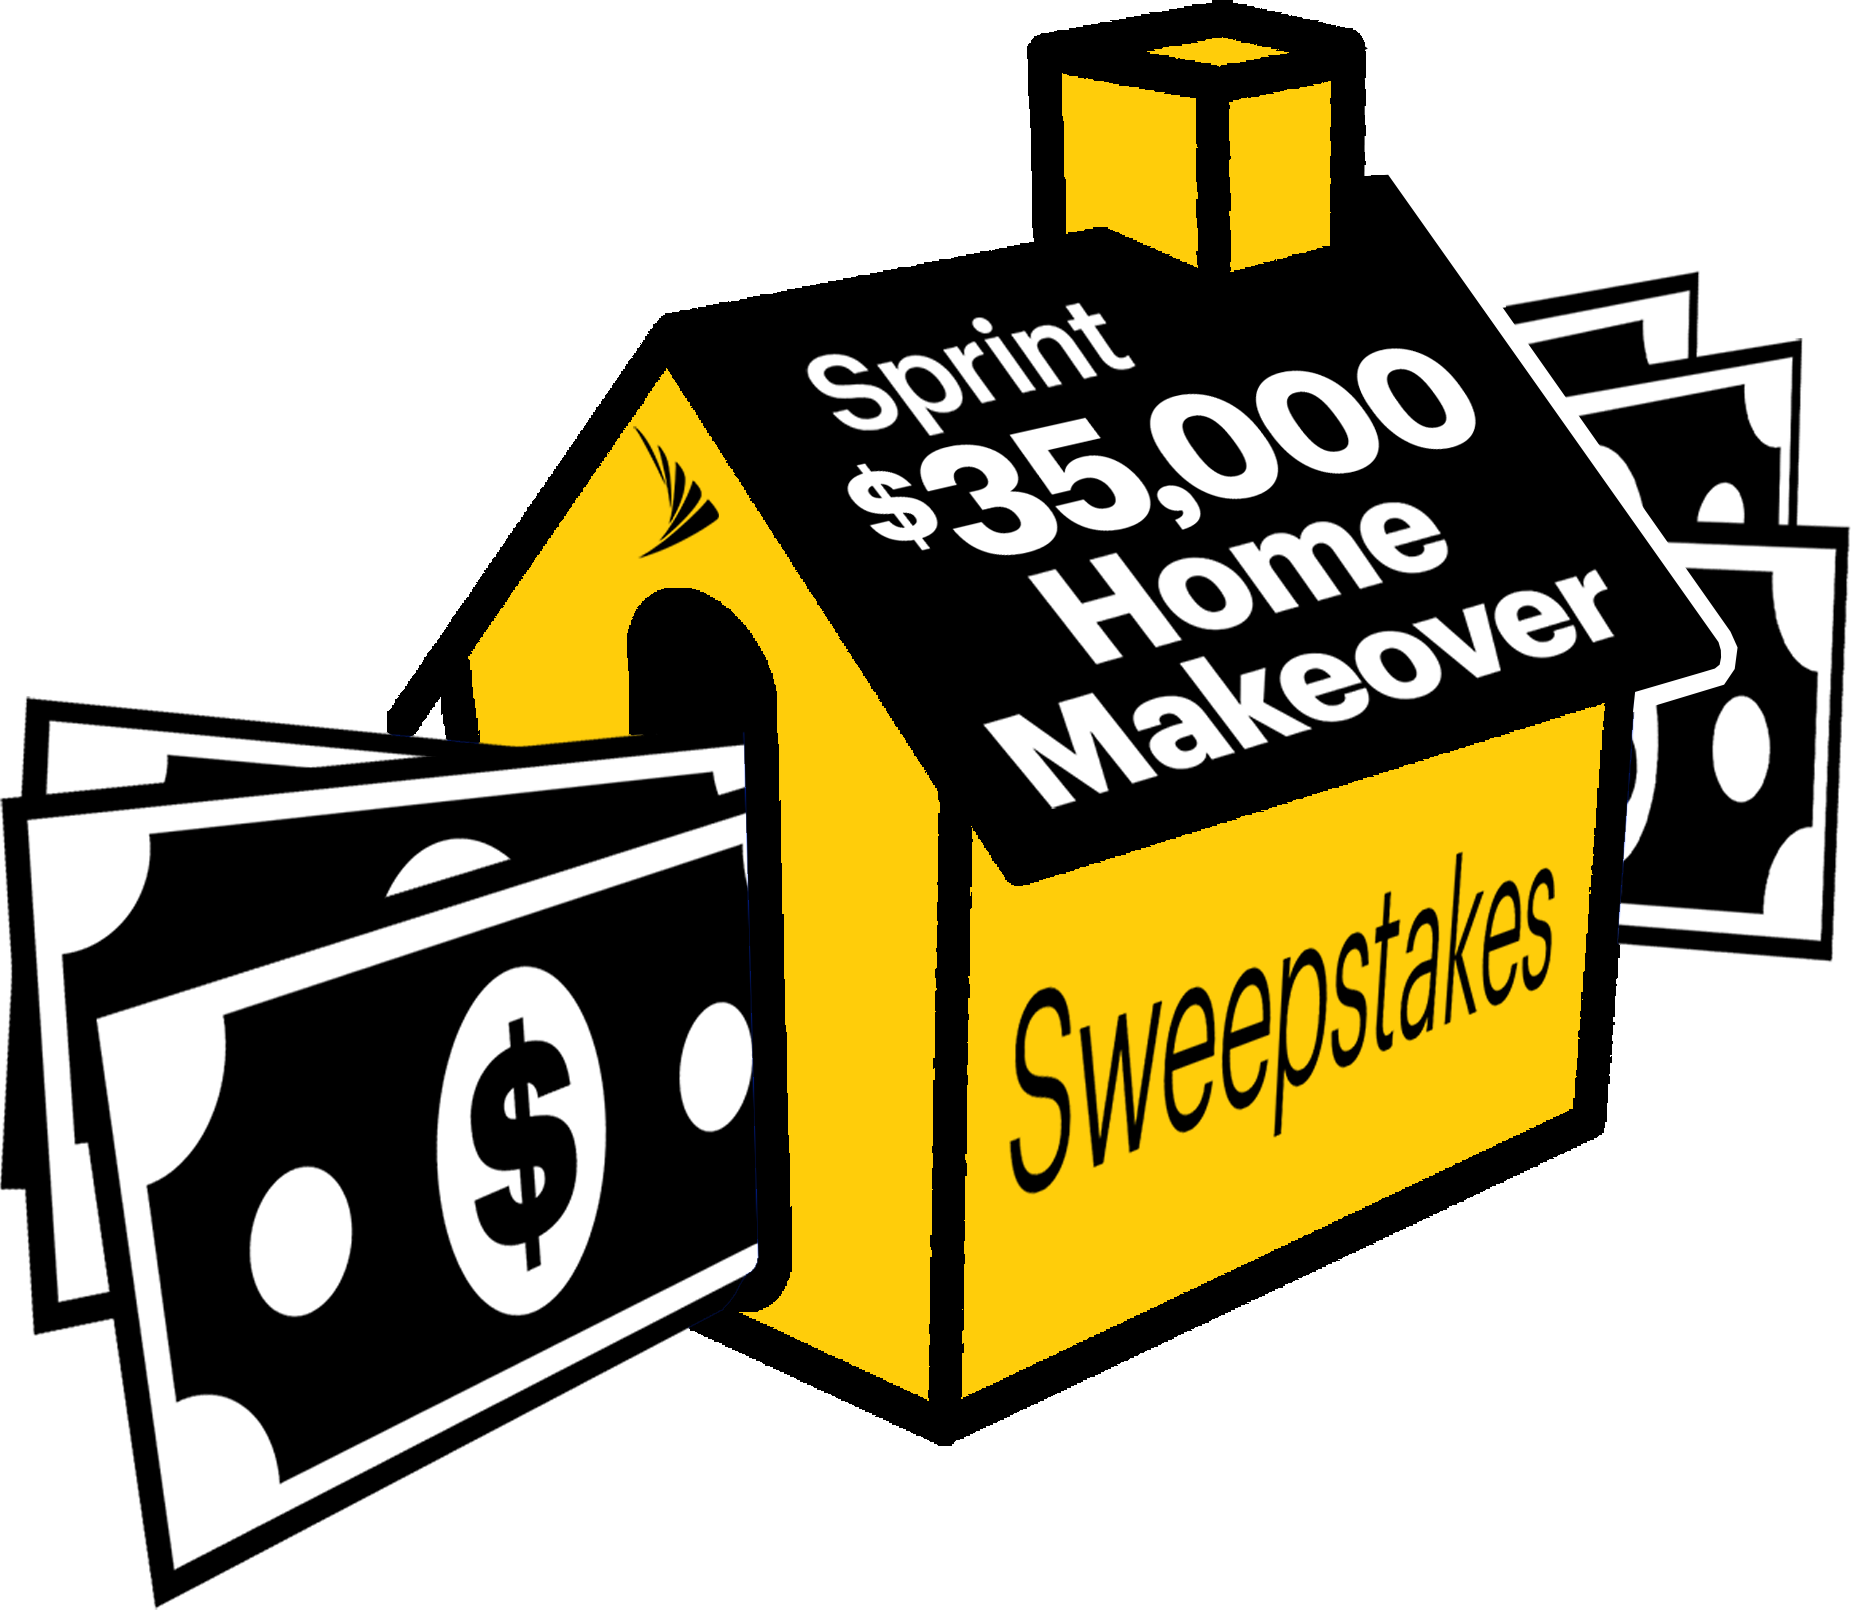 Win with Sprint. Merry & Bright Sweepstakes